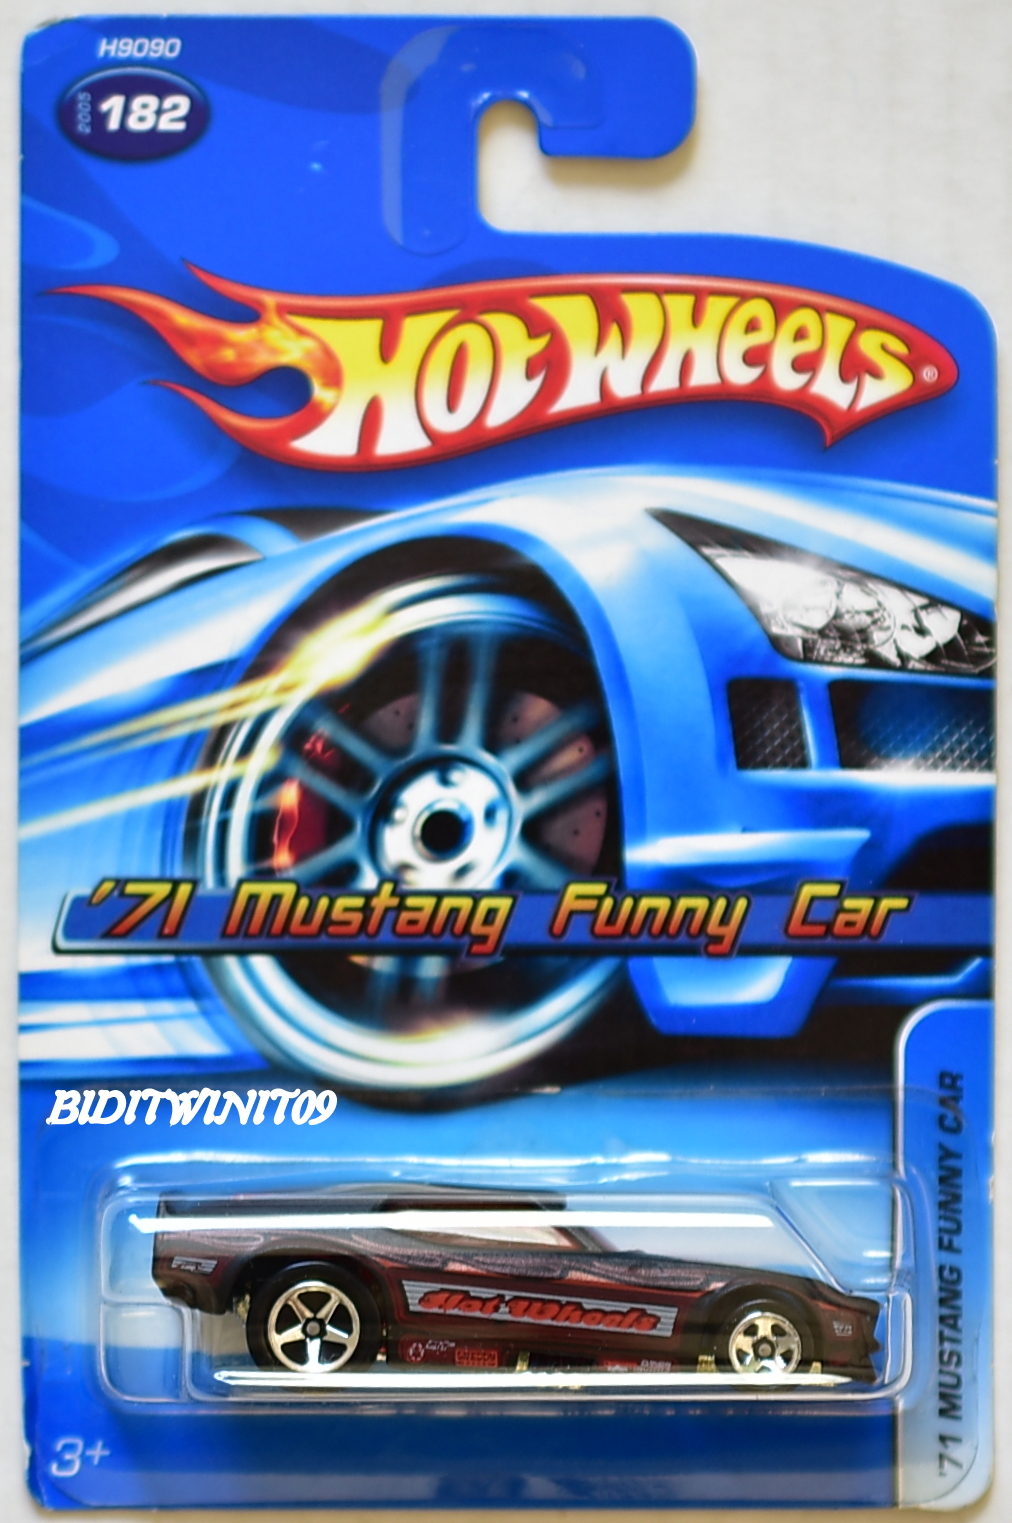 HOT WHEELS 2005 '71 MUSTANG FUNNY CAR #182 BLACK & RED E+